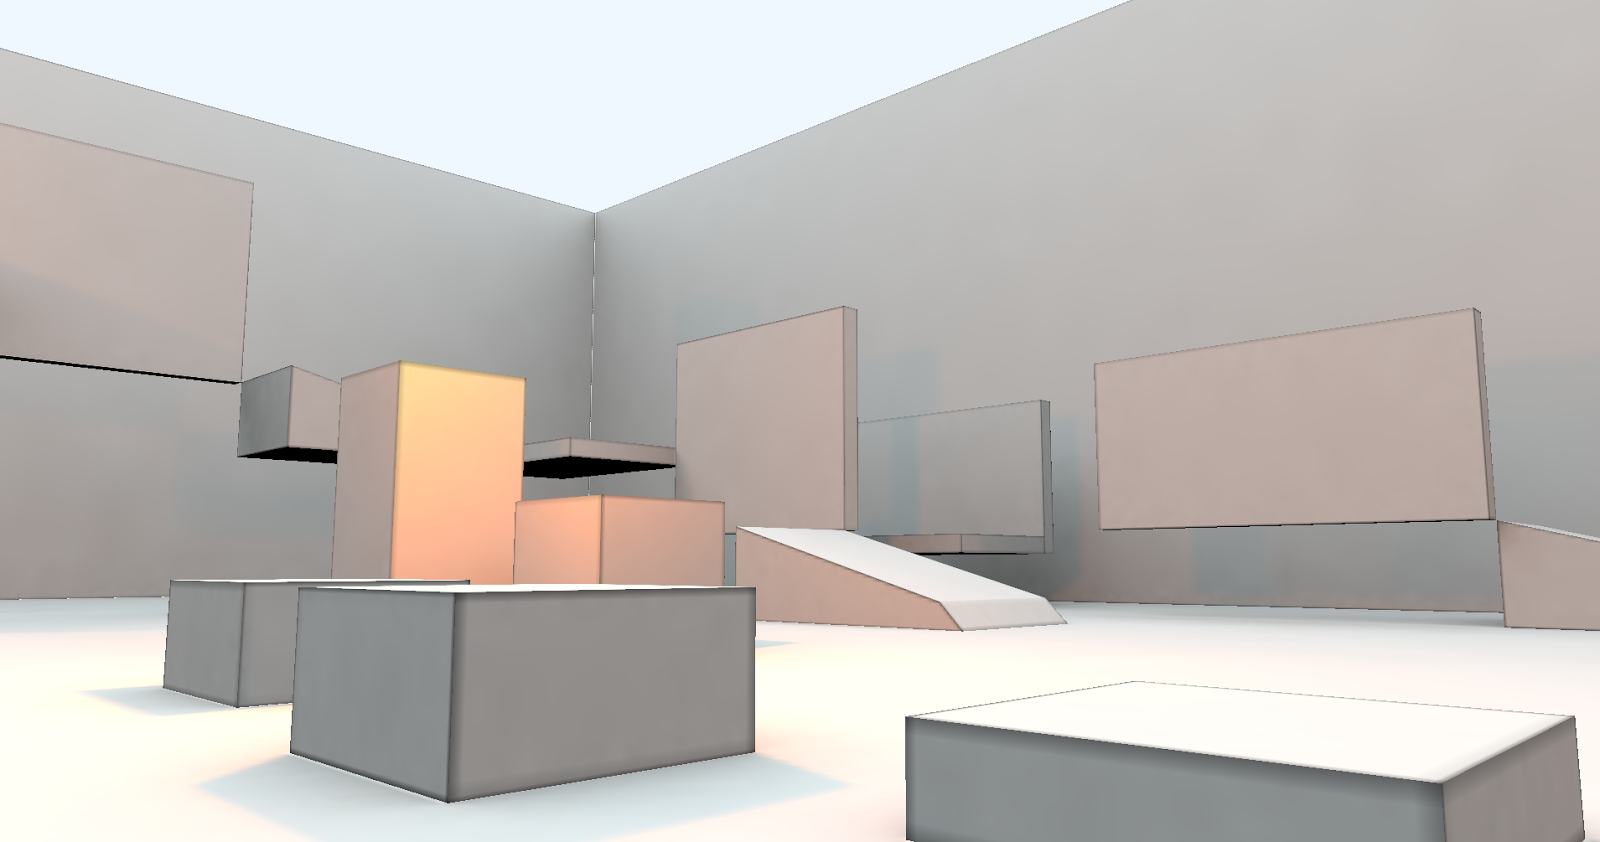 us load in maps from the hammer map editor and move with fps controls so prototyping has been going great so far and the game is already taking shape